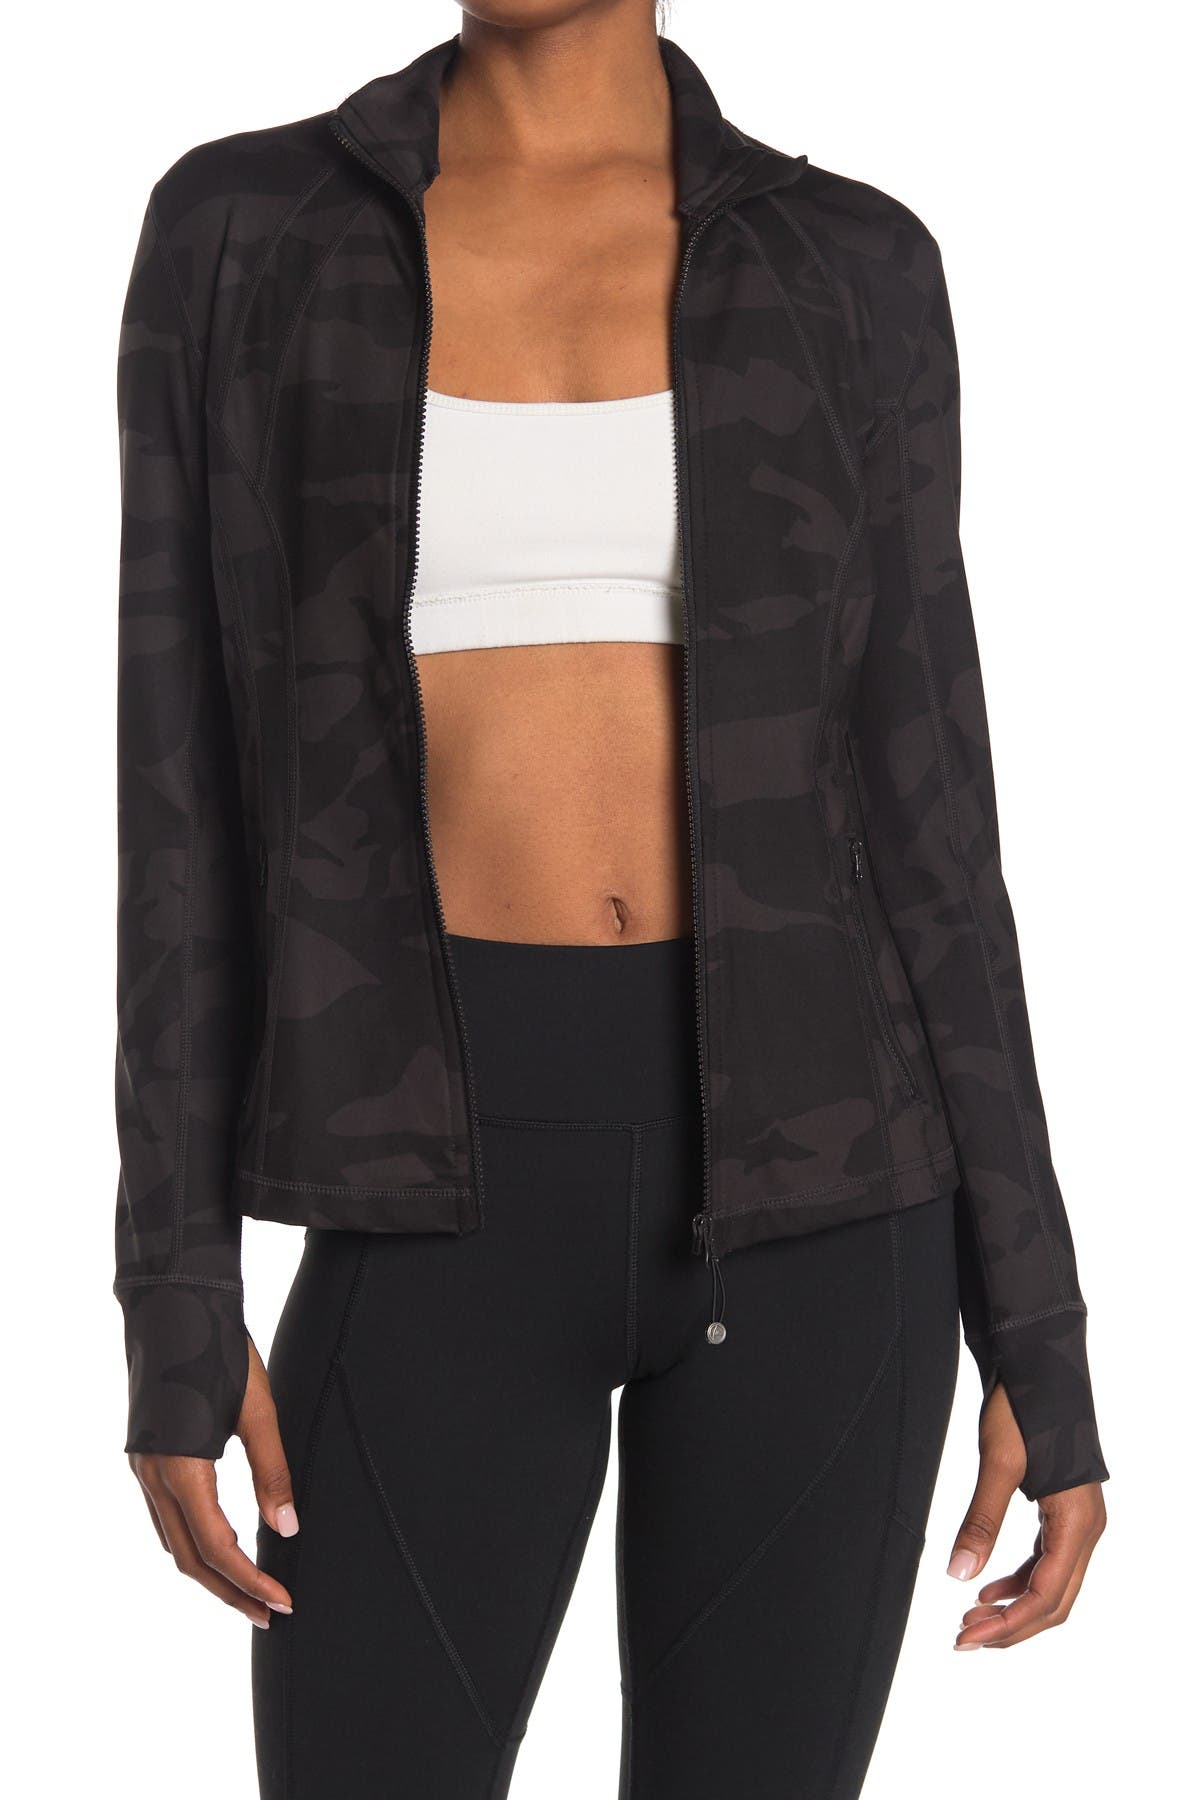 Image of 90 Degree By Reflex Lux Printed Full-Zip Jacket